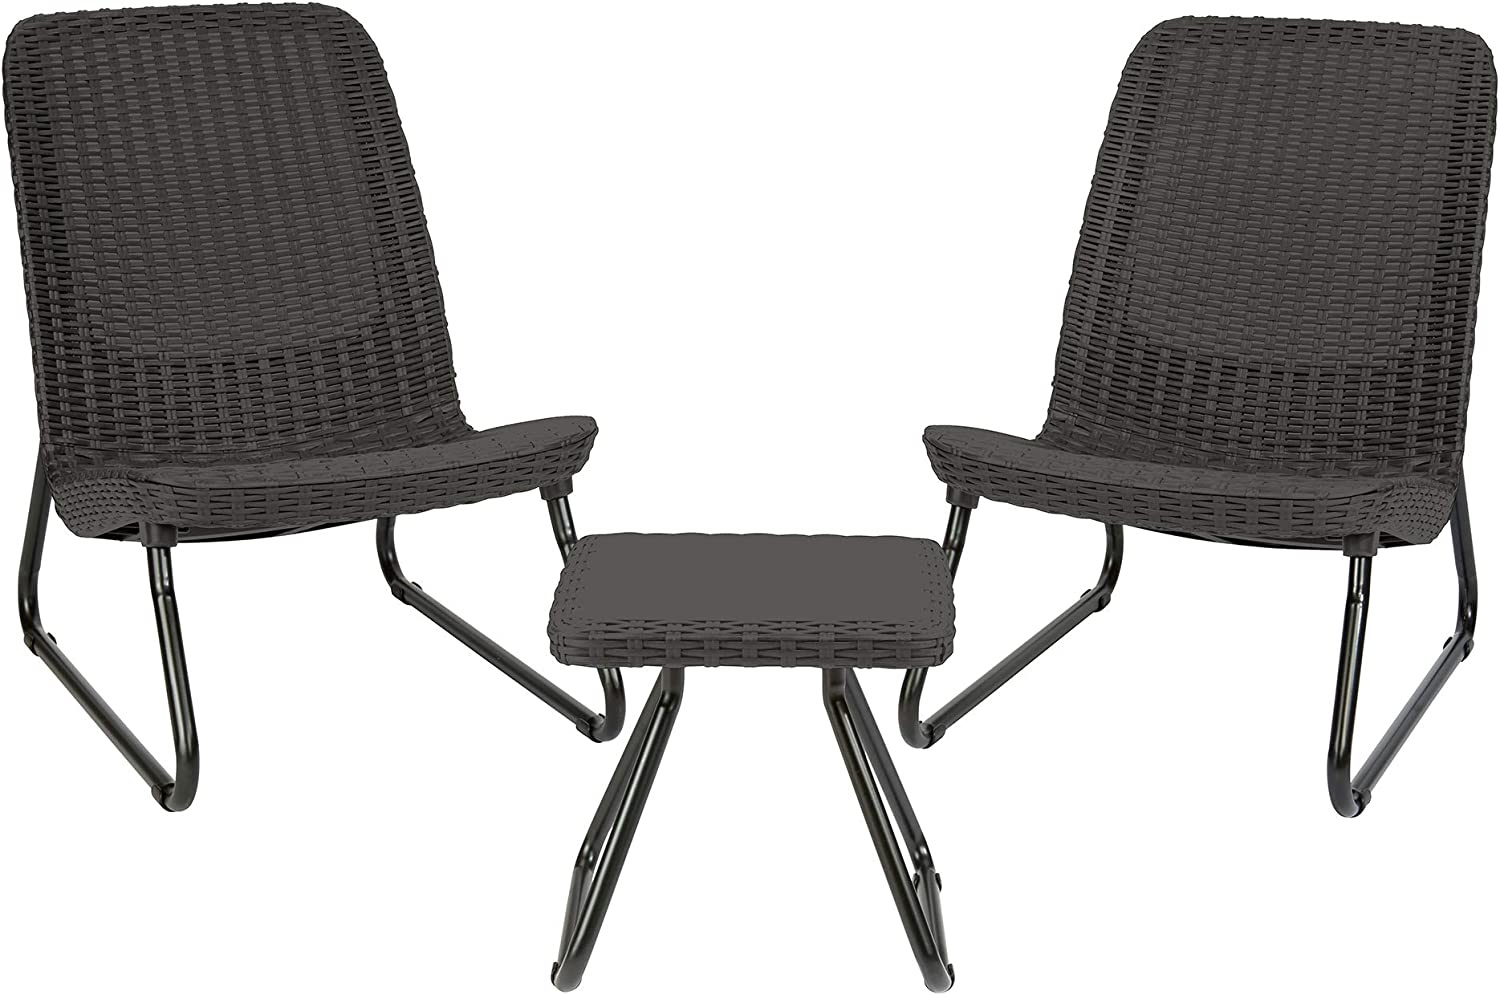 Keter Rio 3 Pc All Weather Outdoor Patio Garden Conversation Chair Table Set Furniture, Grey